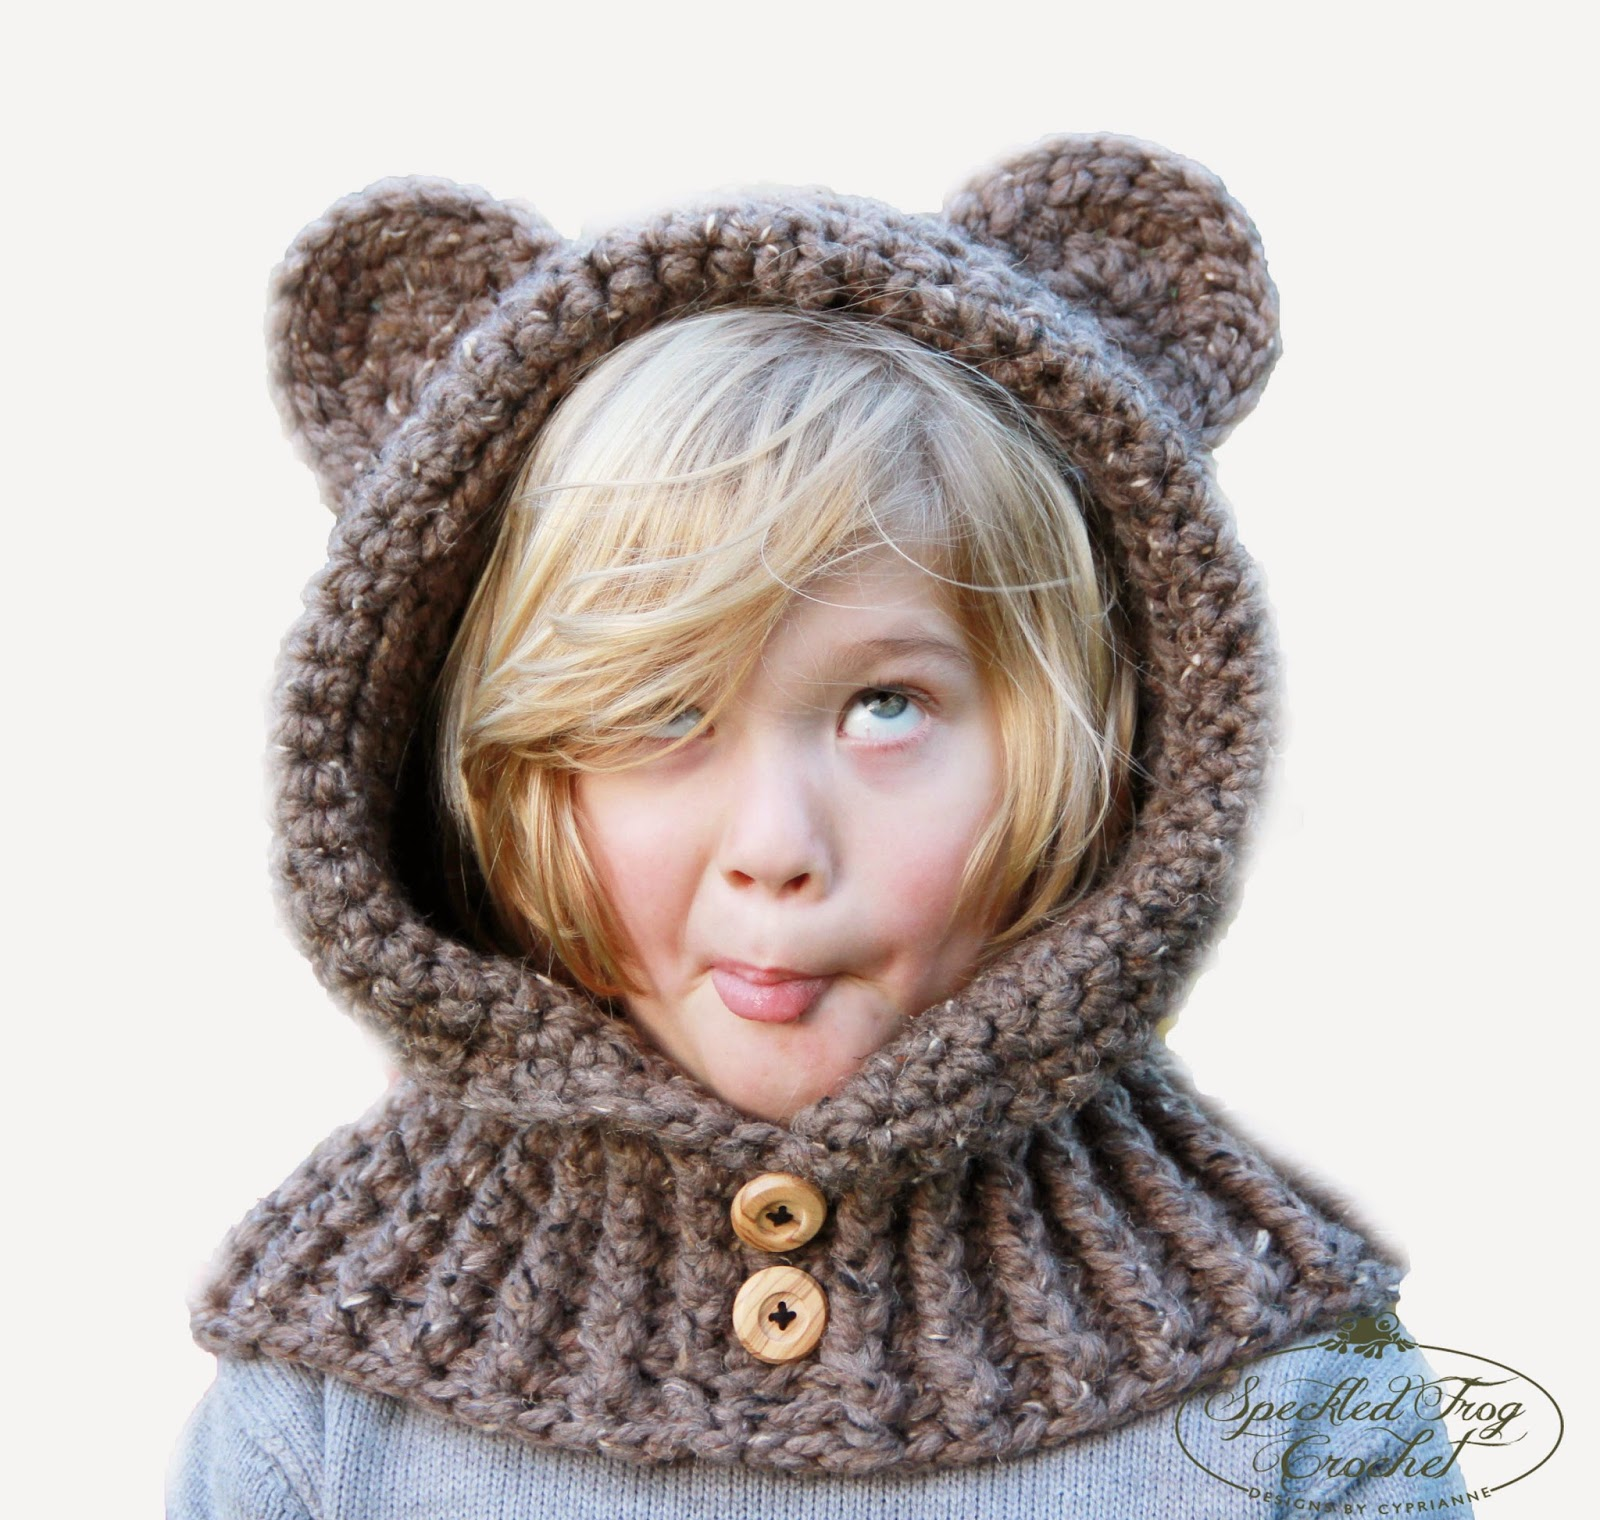 Hooded Cowl Knit Pattern : Pretty Darn Adorable Crochet: CROCHET HOODED BEAR COWL PATTERN